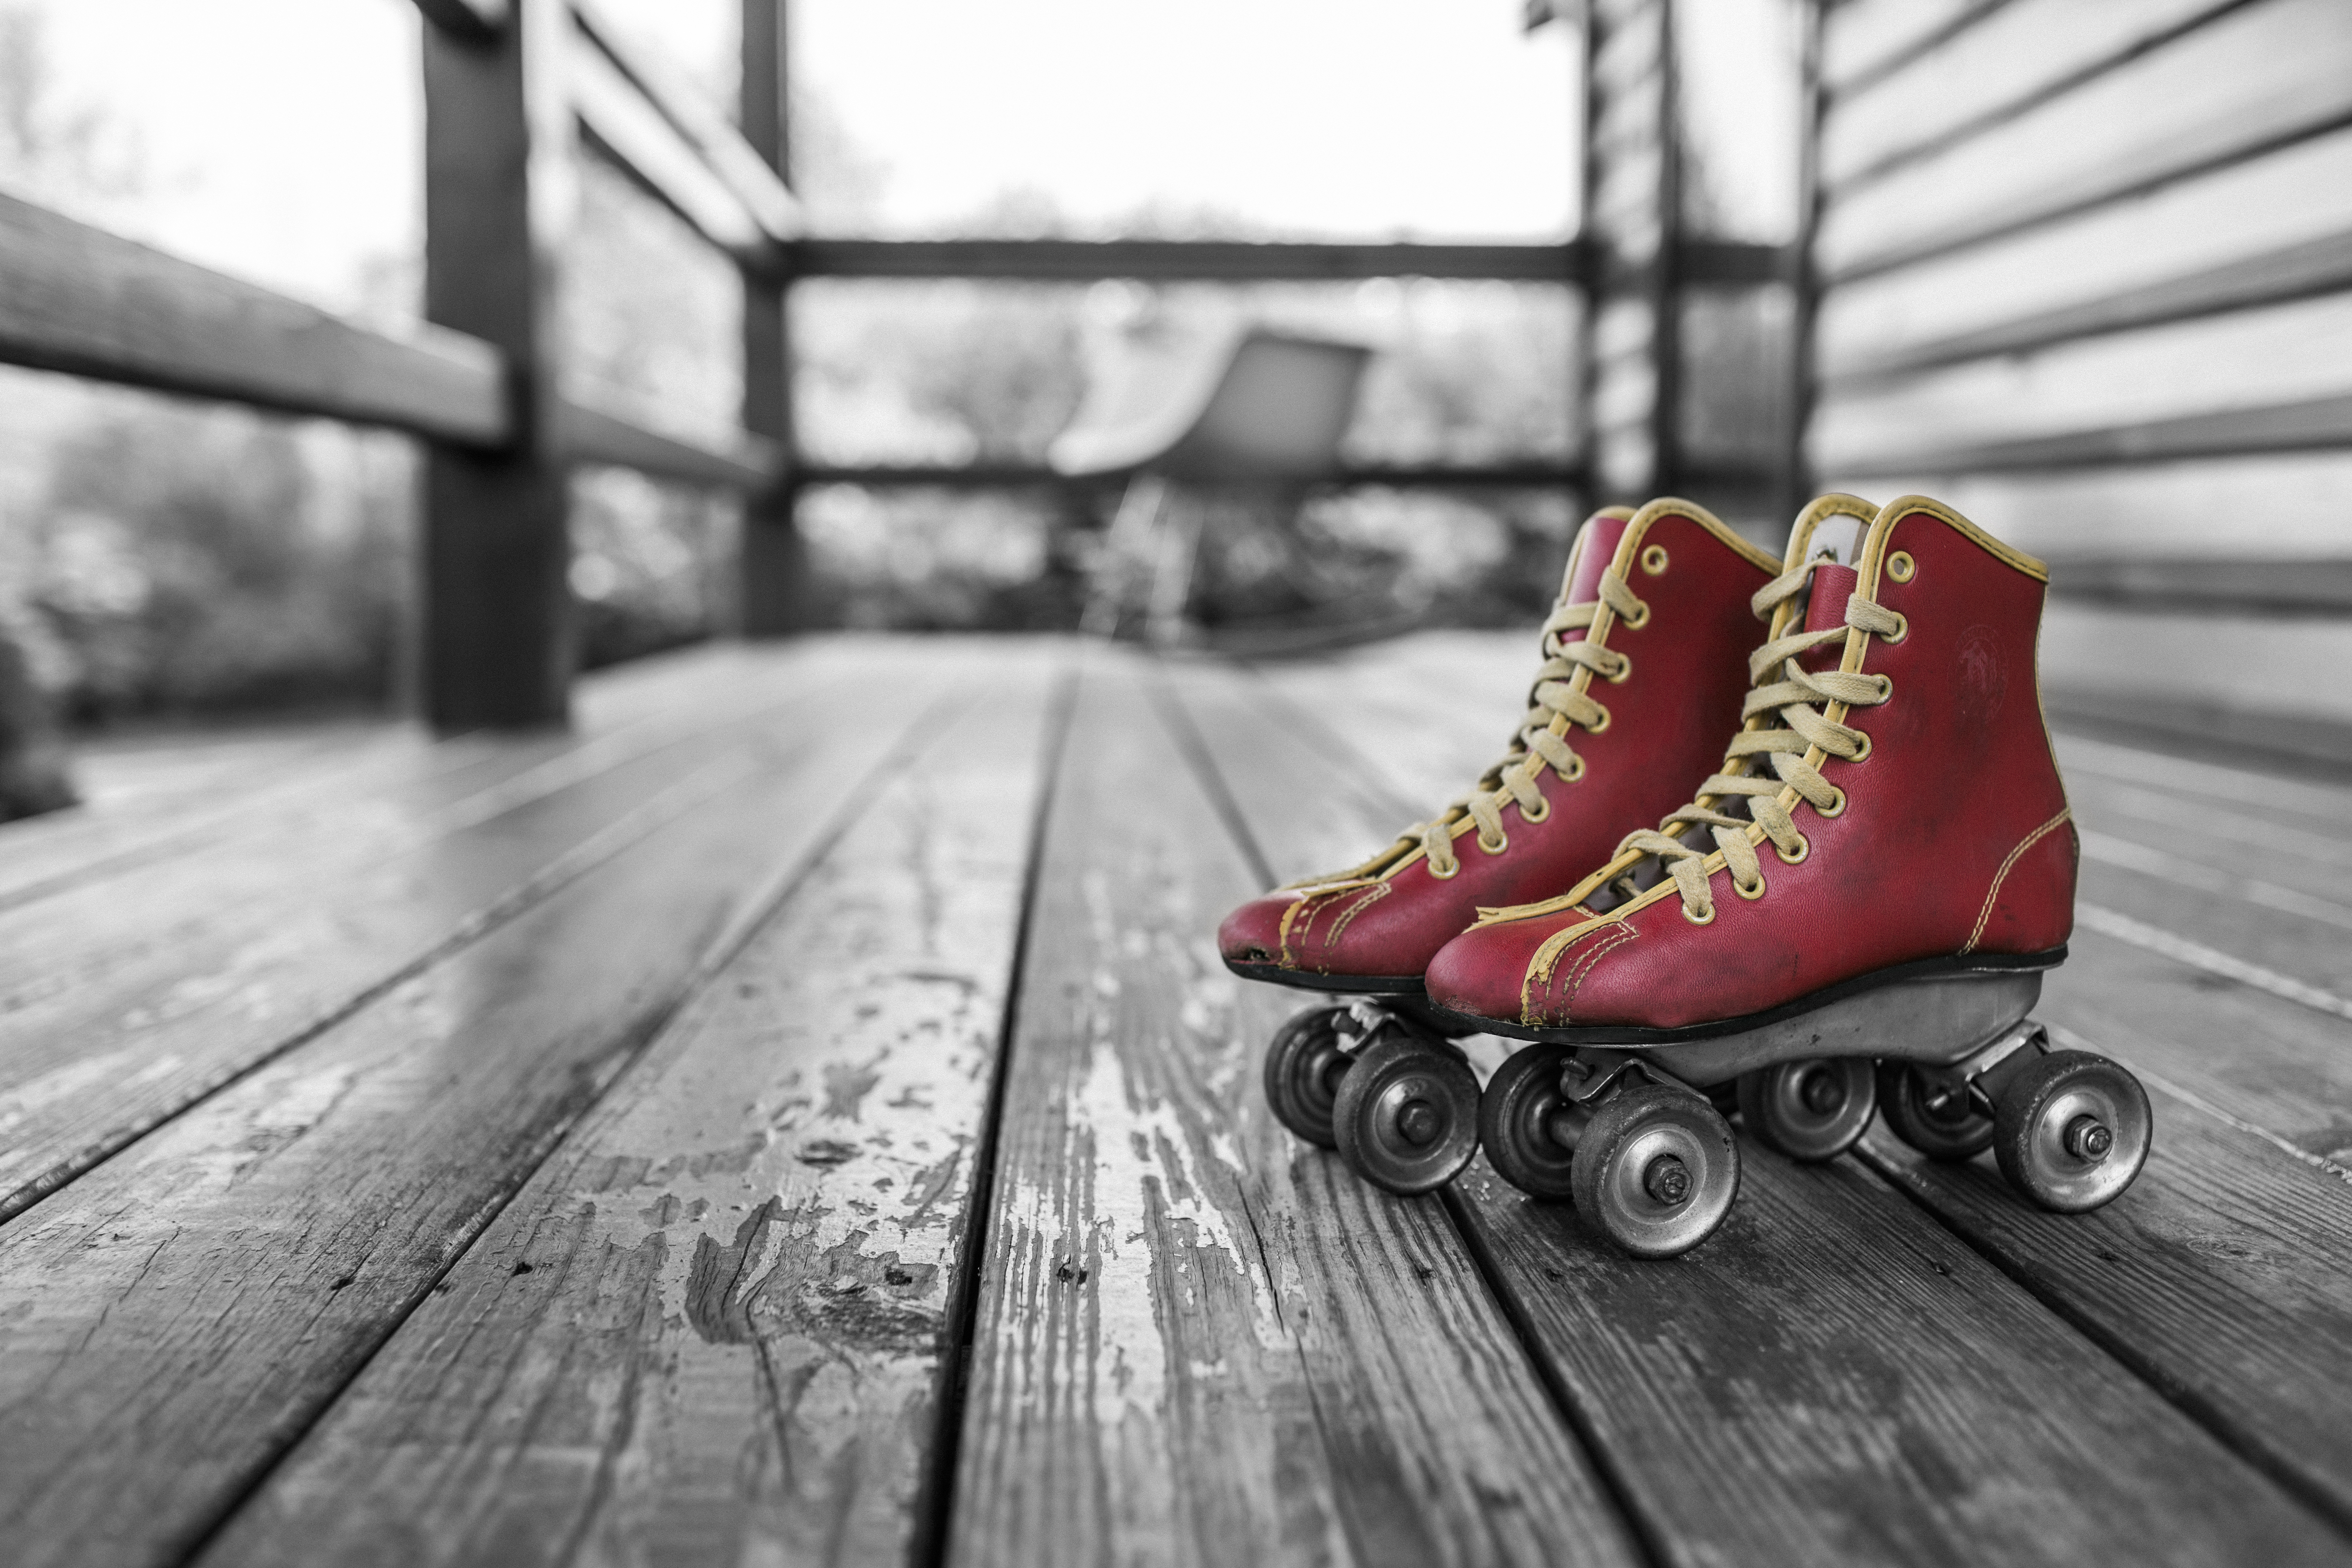 Roller skates for free - Free Stock Photo Of Red Vintage Shoes Sport Man Jumping On Rollerskates Ramp